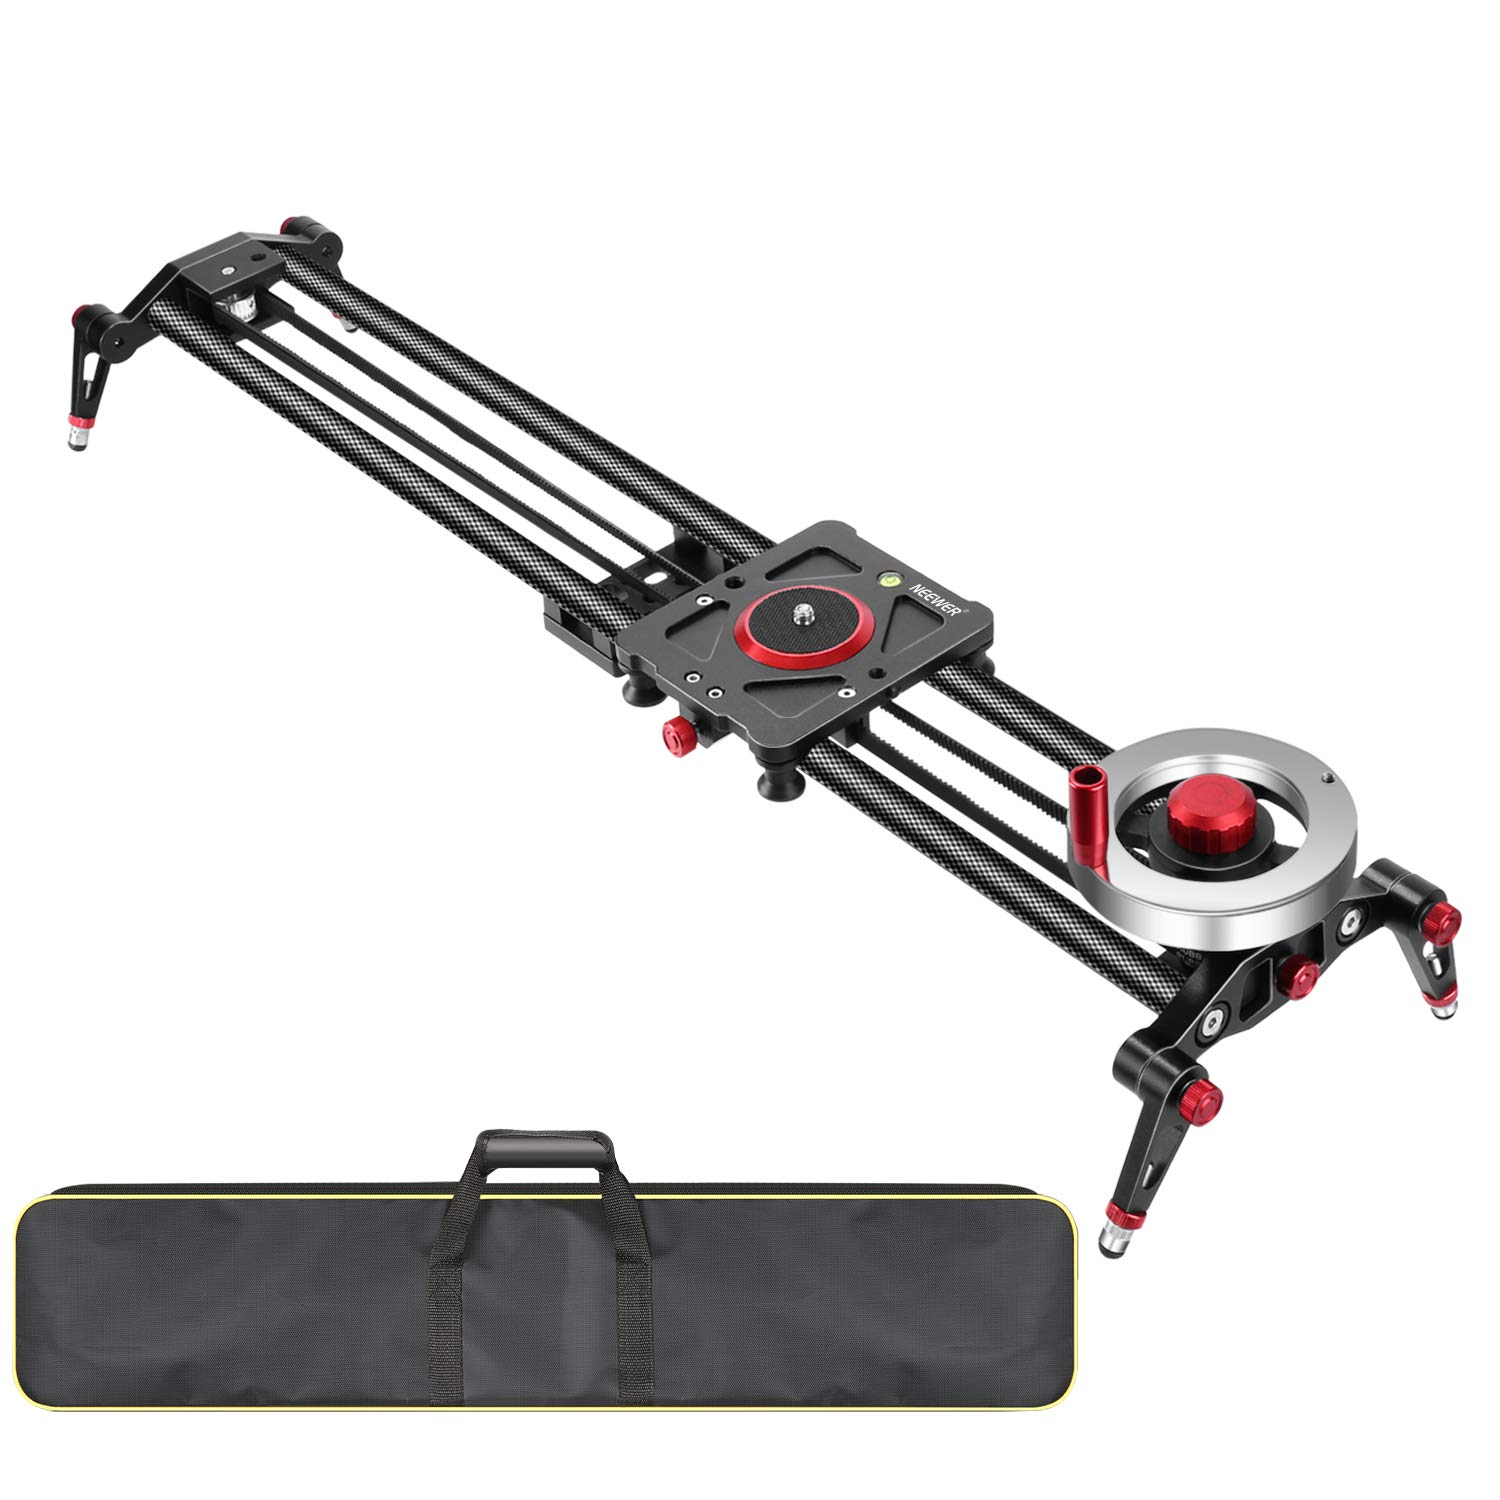 Neewer Camera Slider Video Track Dolly Rail Stabilizer: 31-inch/80cm, Flywheel Counterweight with Light Carbon Fiber Rails, Adjustable Legs, Carry Bag, DSLR Camera Camcorder Track for Filming by Neewer